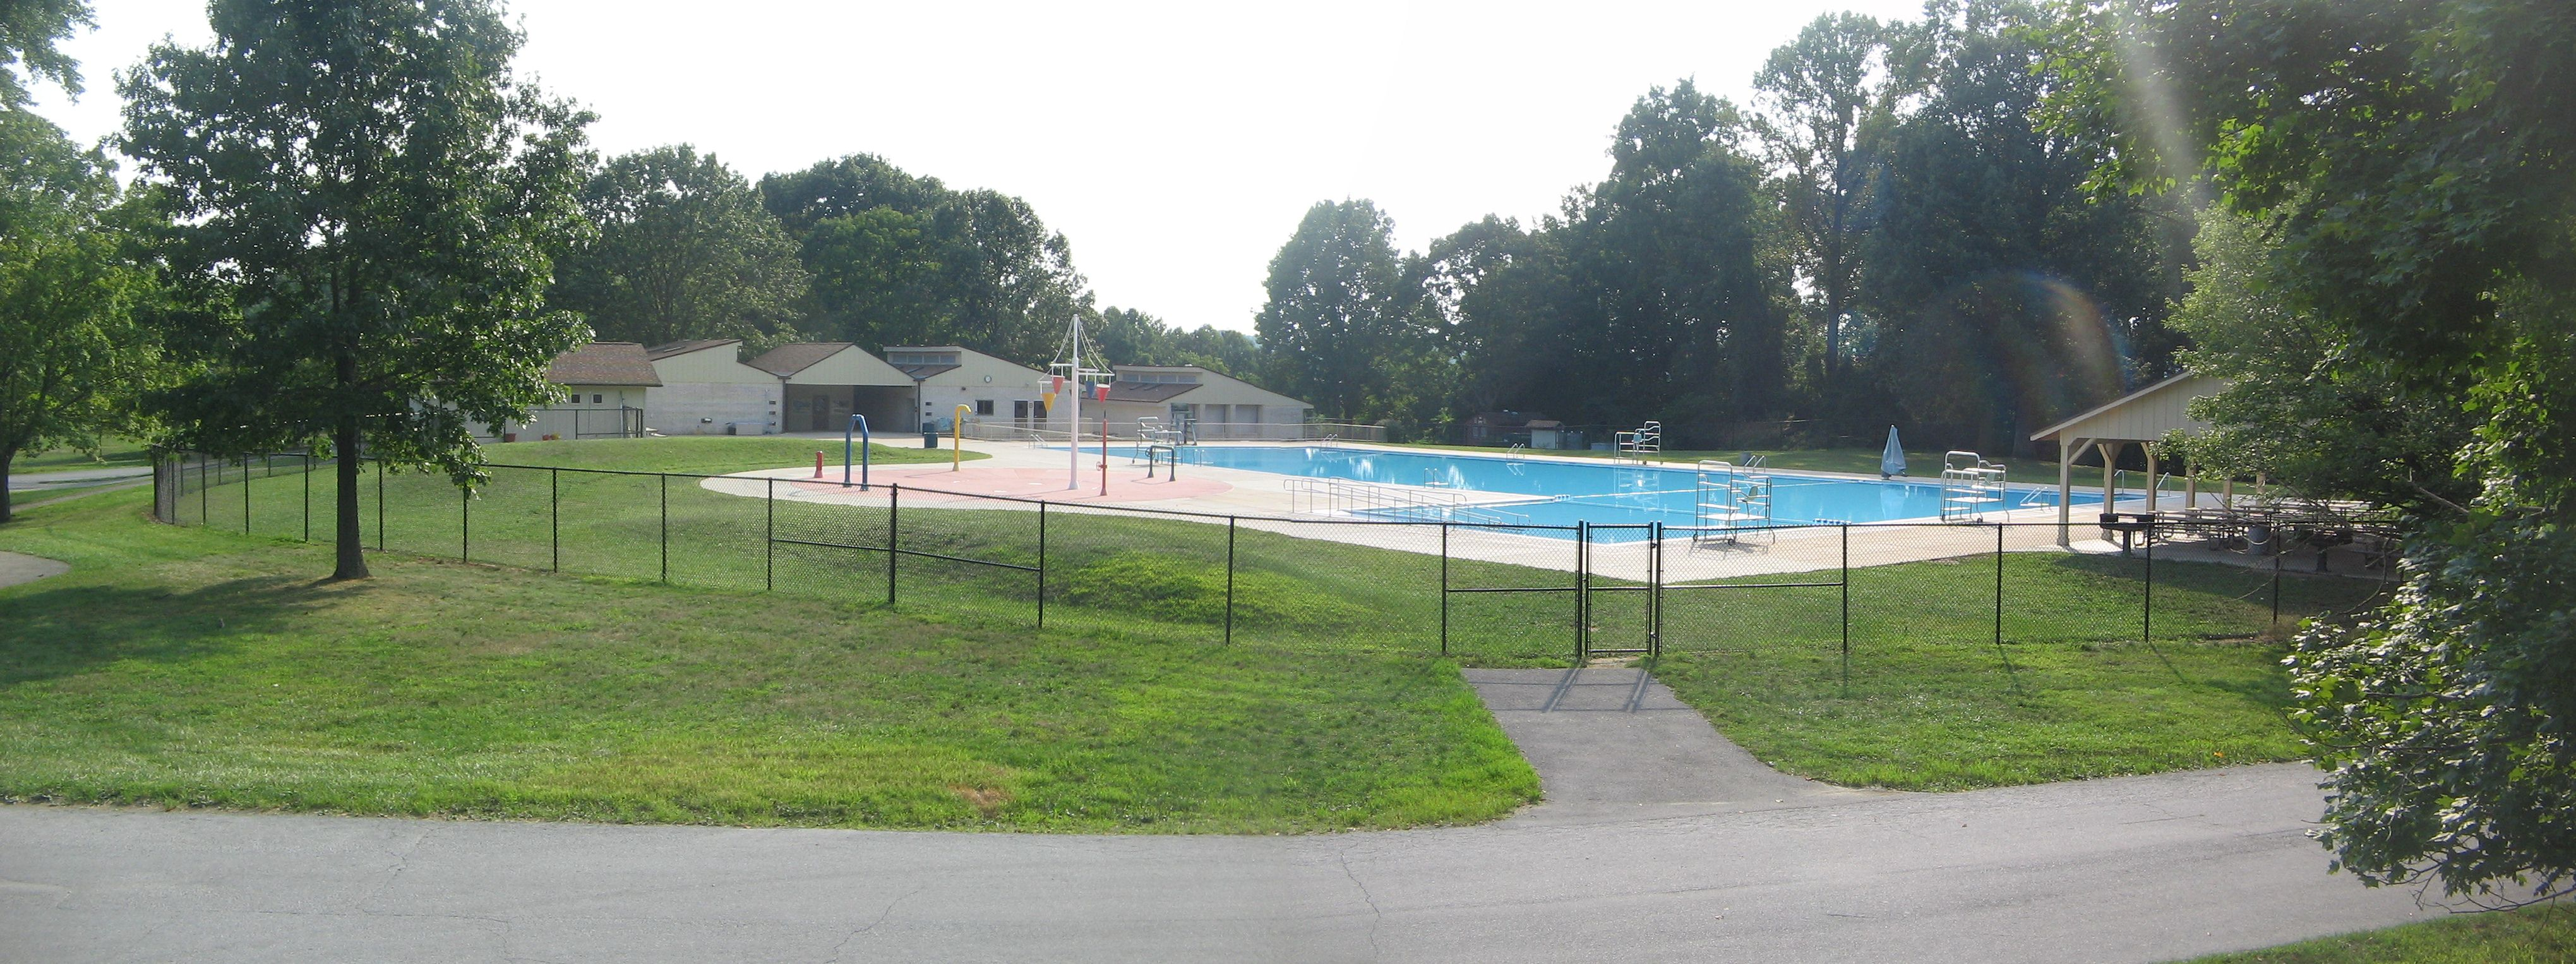 Pioneer Pool And Spa